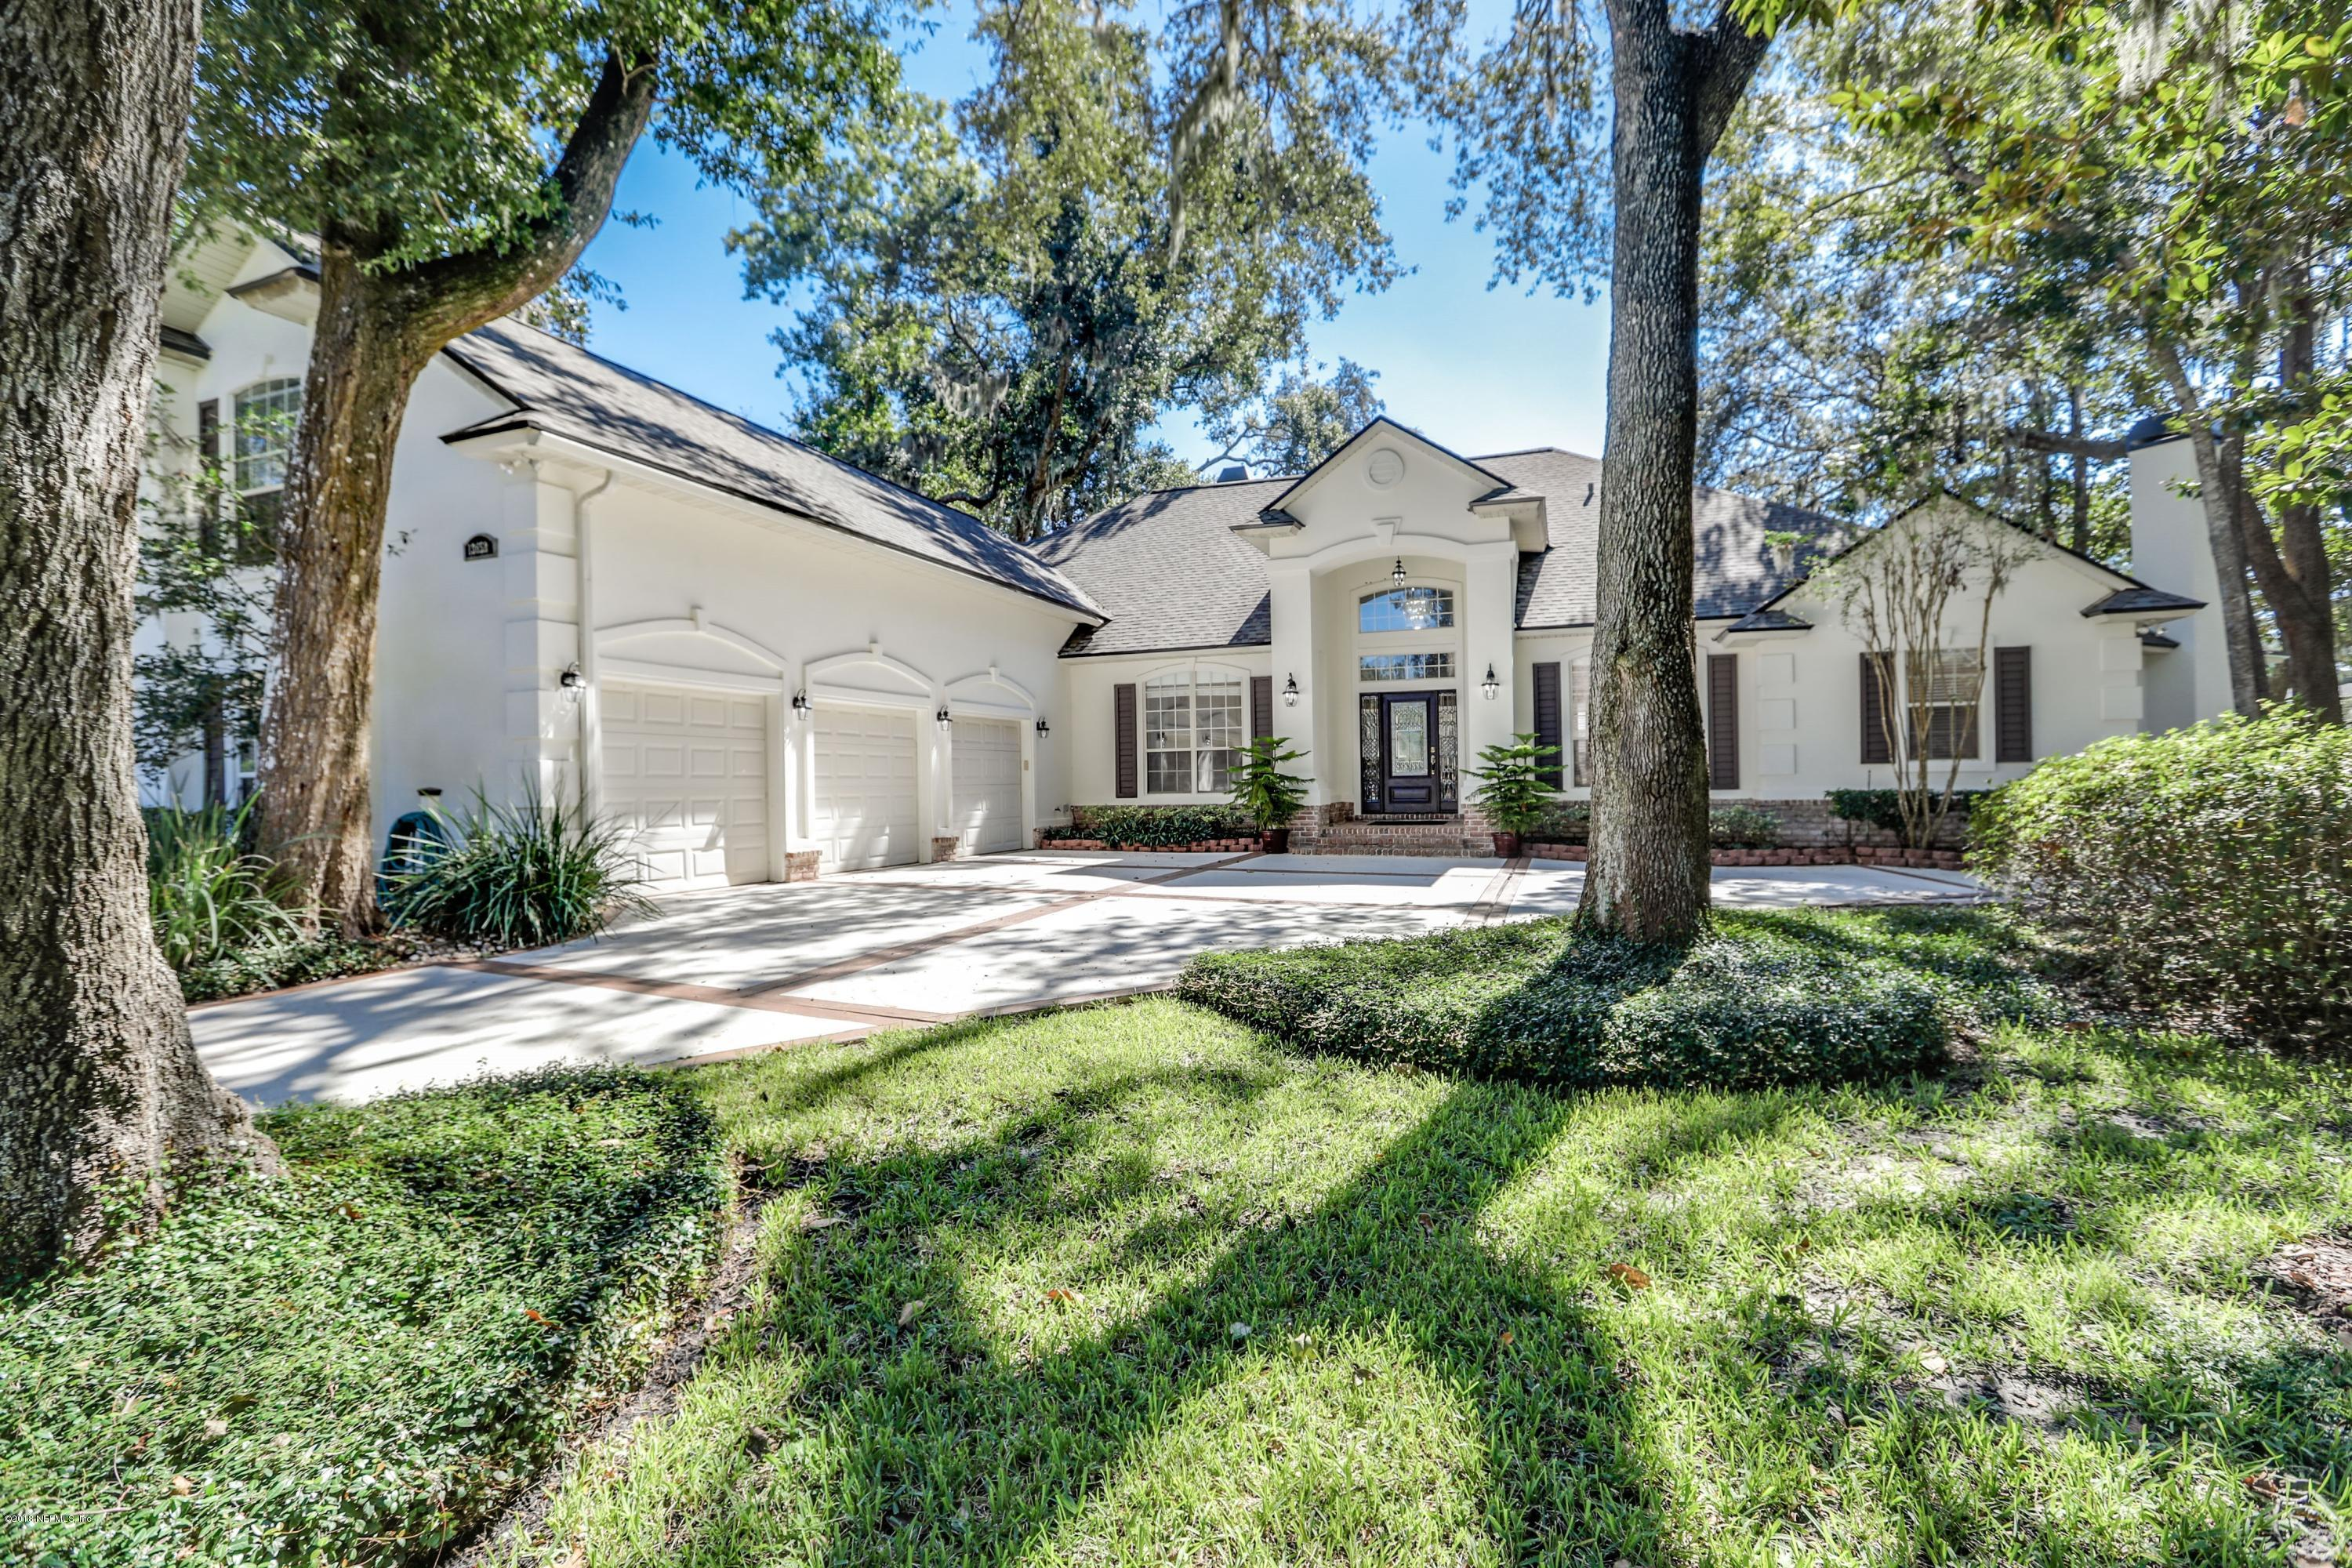 13658 LITTLE HARBOR CT., JACKSONVILLE, FLORIDA 32225, 5 Bedrooms Bedrooms, ,6 BathroomsBathrooms,Residential - single family,For sale,LITTLE HARBOR CT.,962209